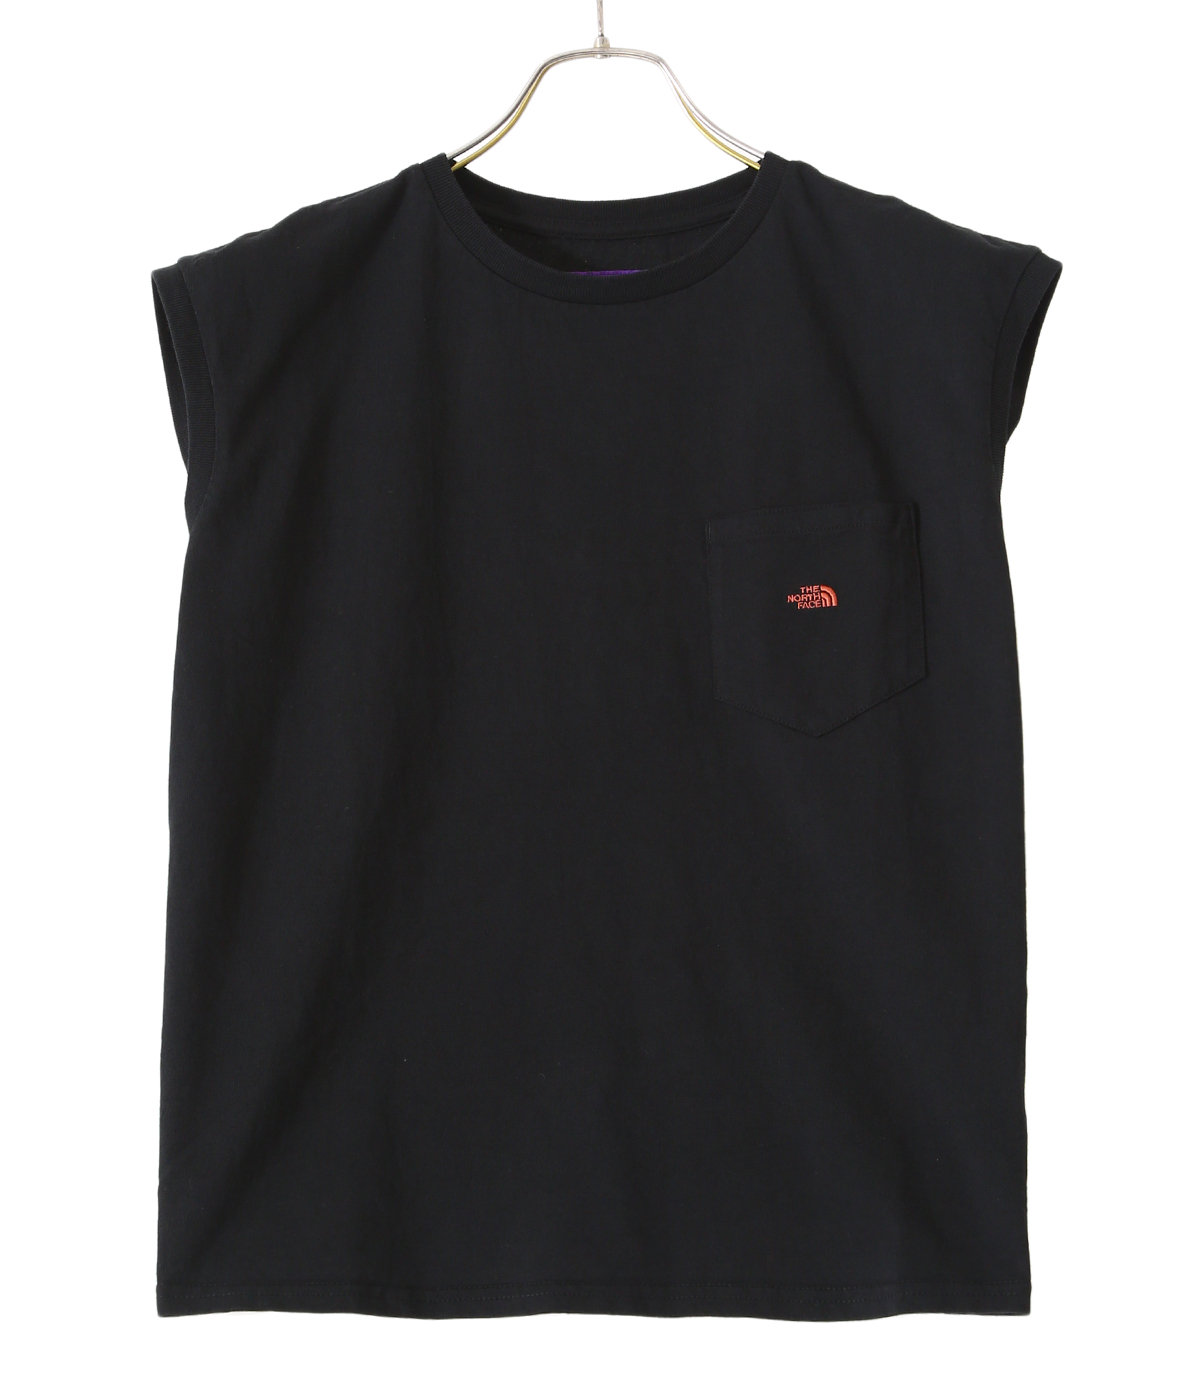 【レディース】7oz N/S Pocket Tee